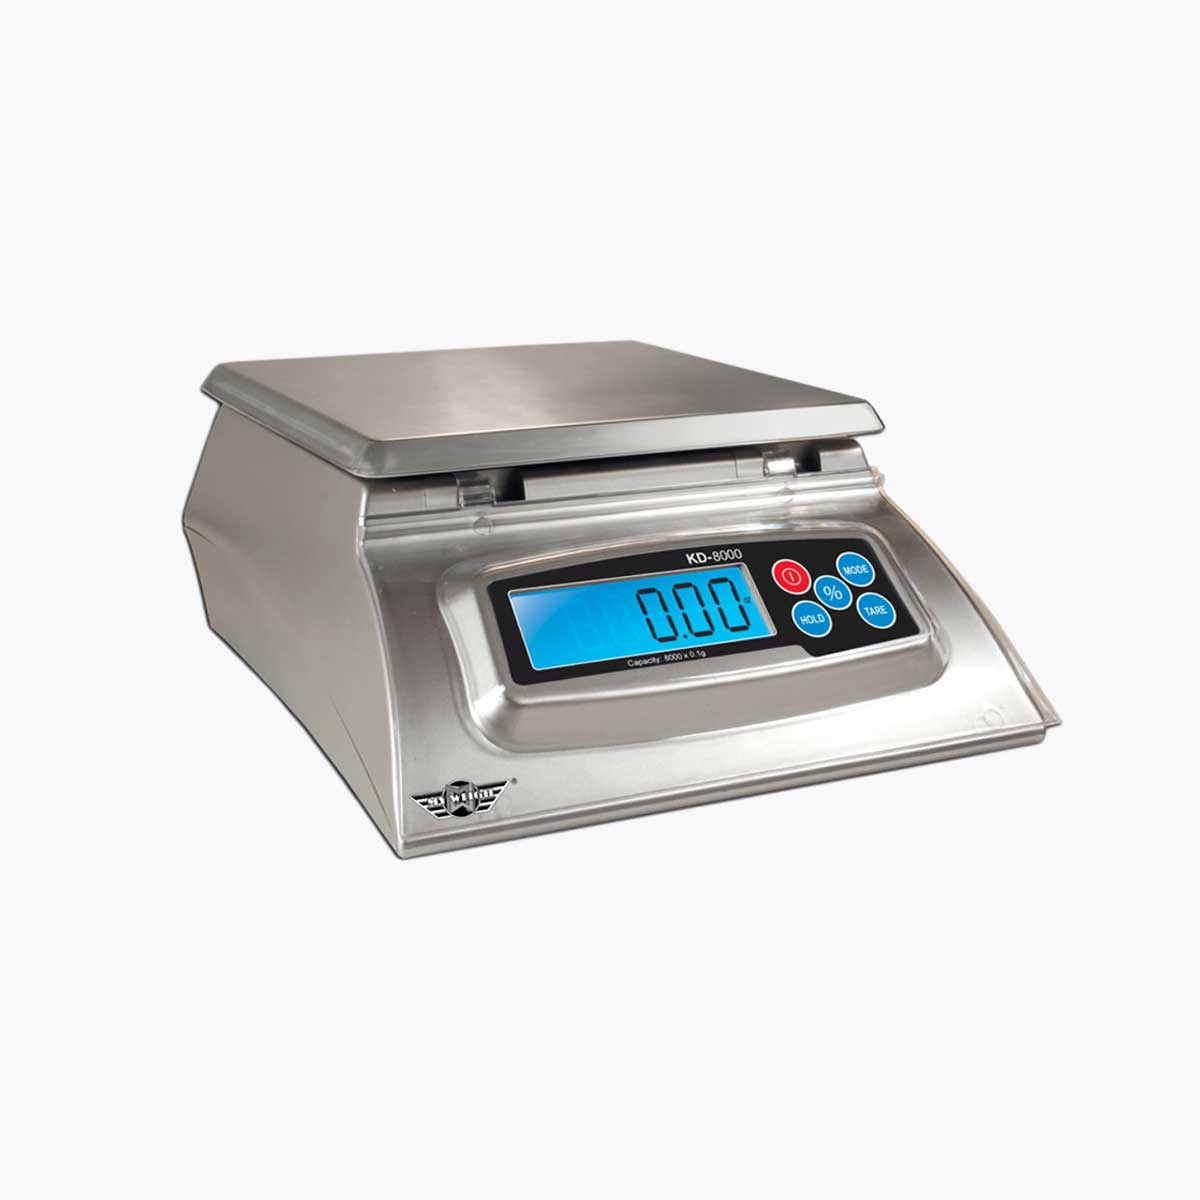 A stainless steel My Weight kitchen digital scale.